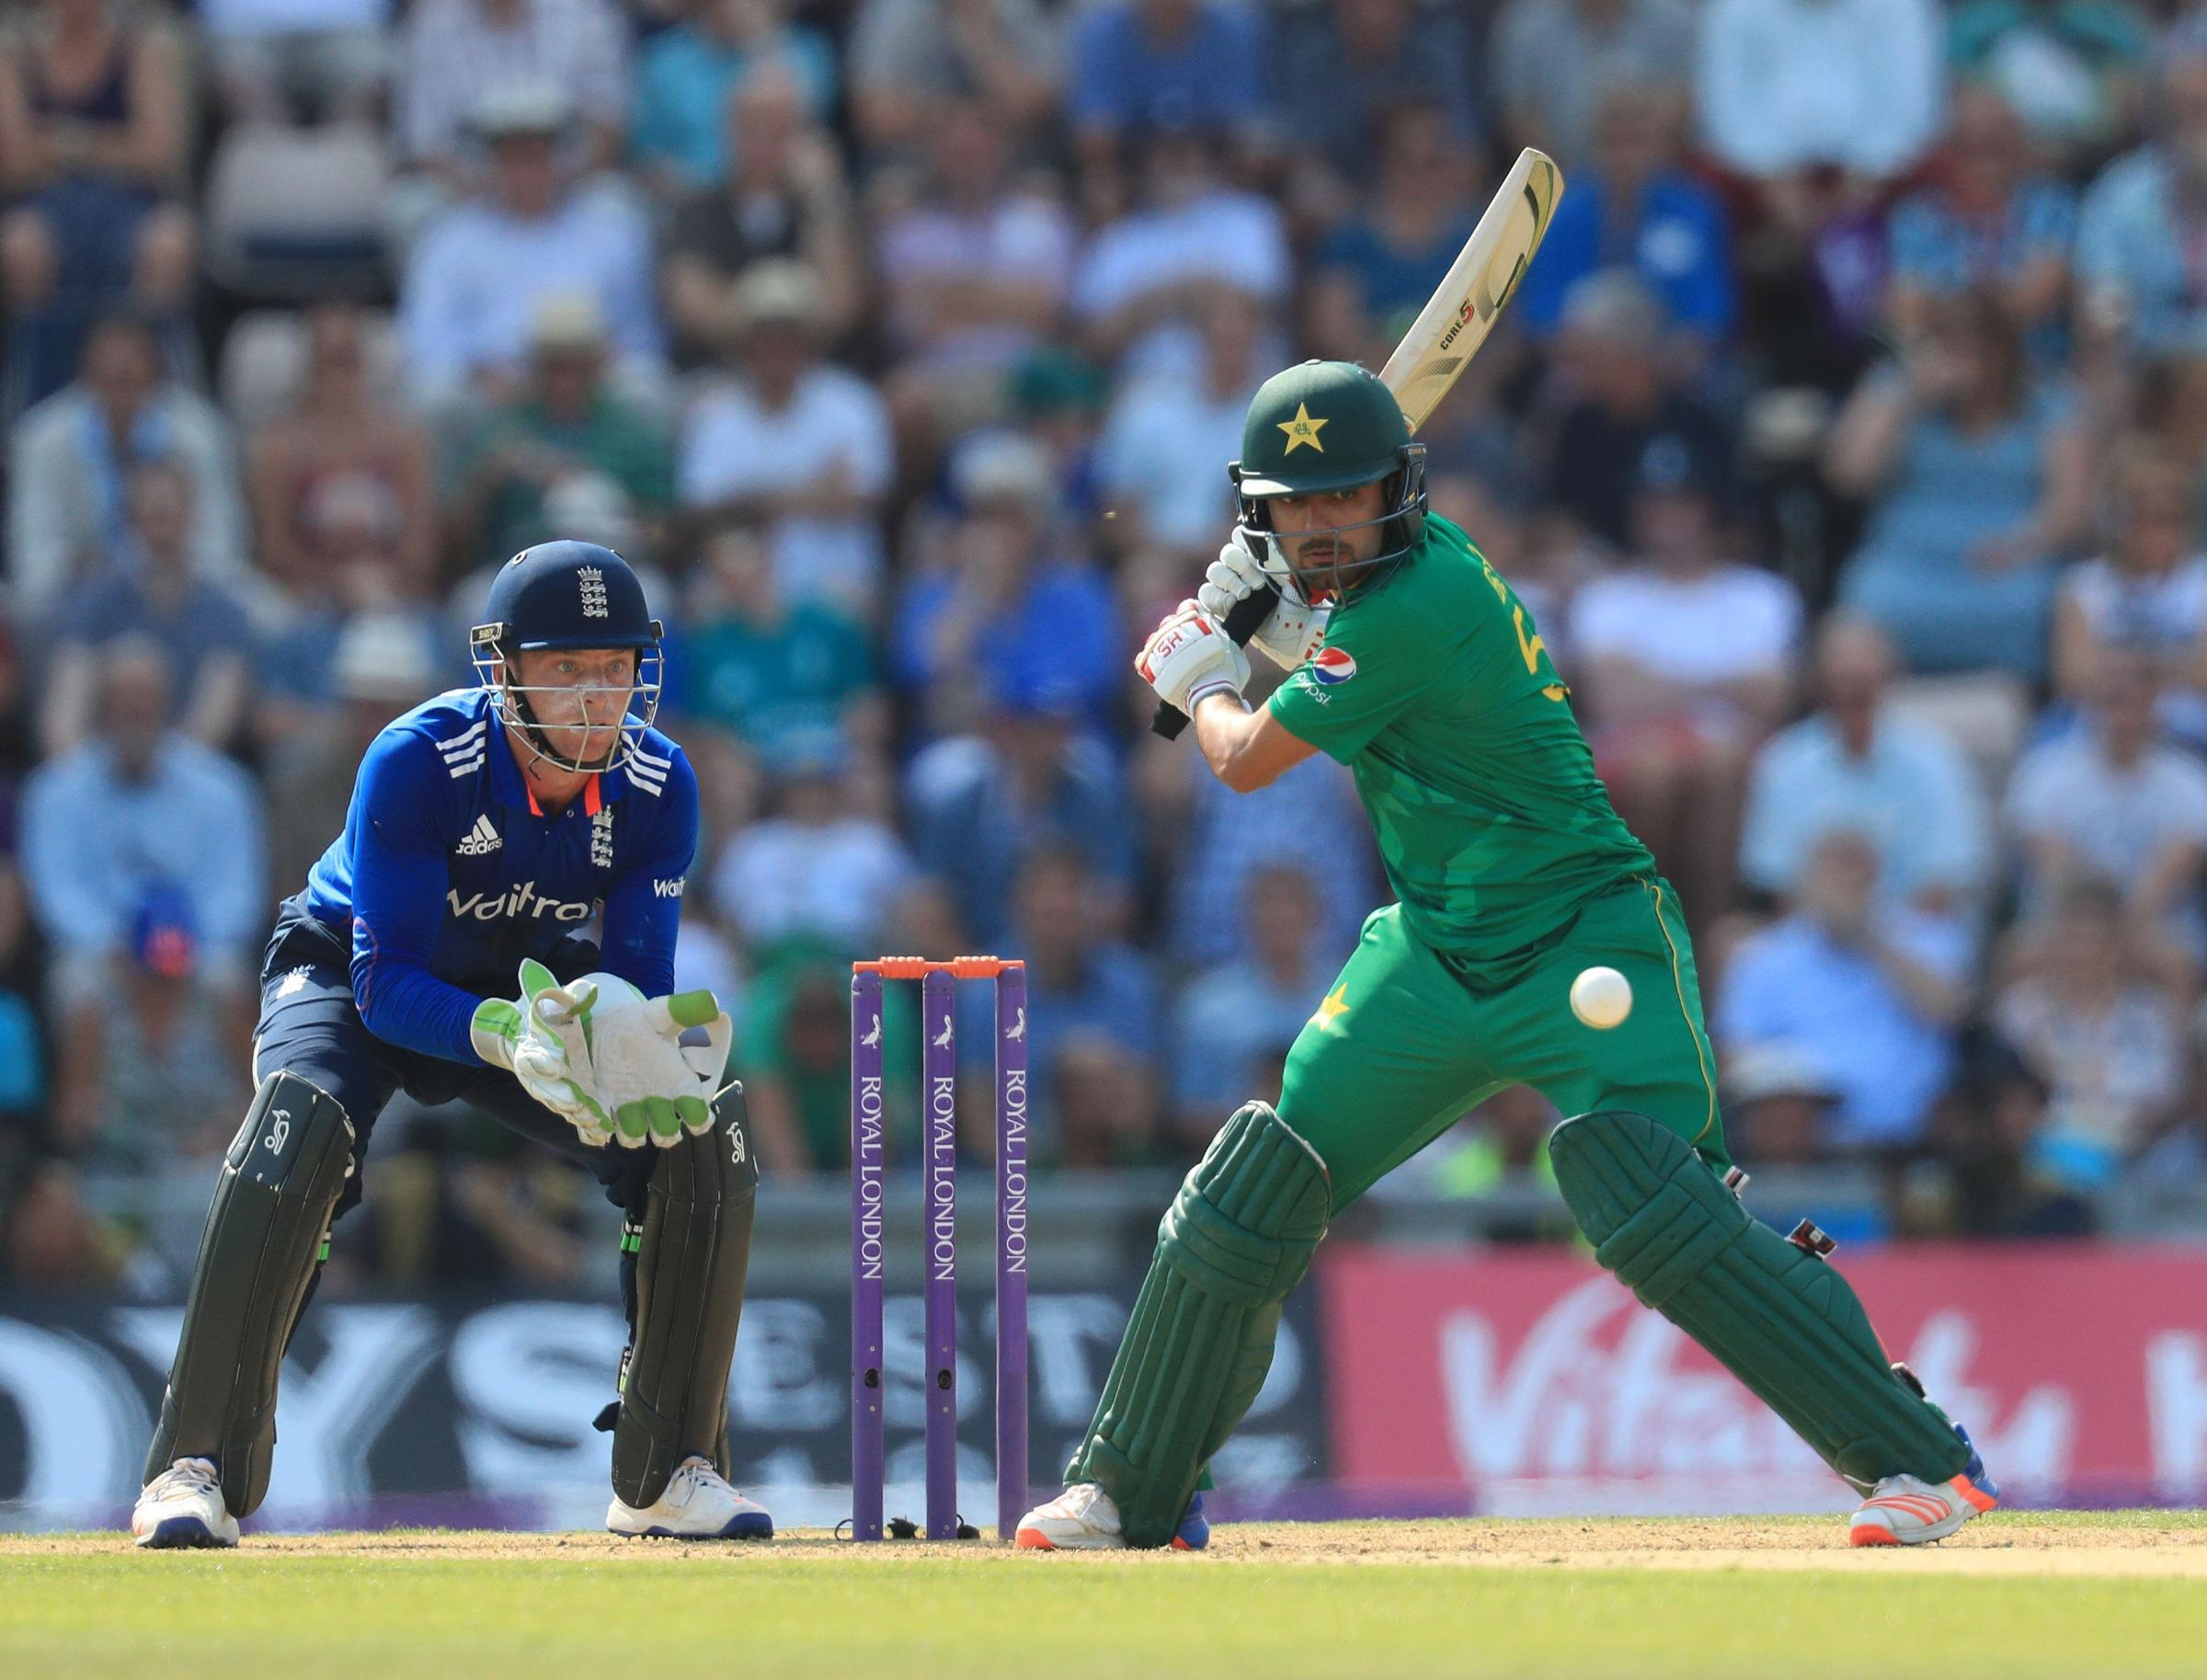 NEW MAN: Pakistan's Babar Azam in action against England. Pic: PA Wire